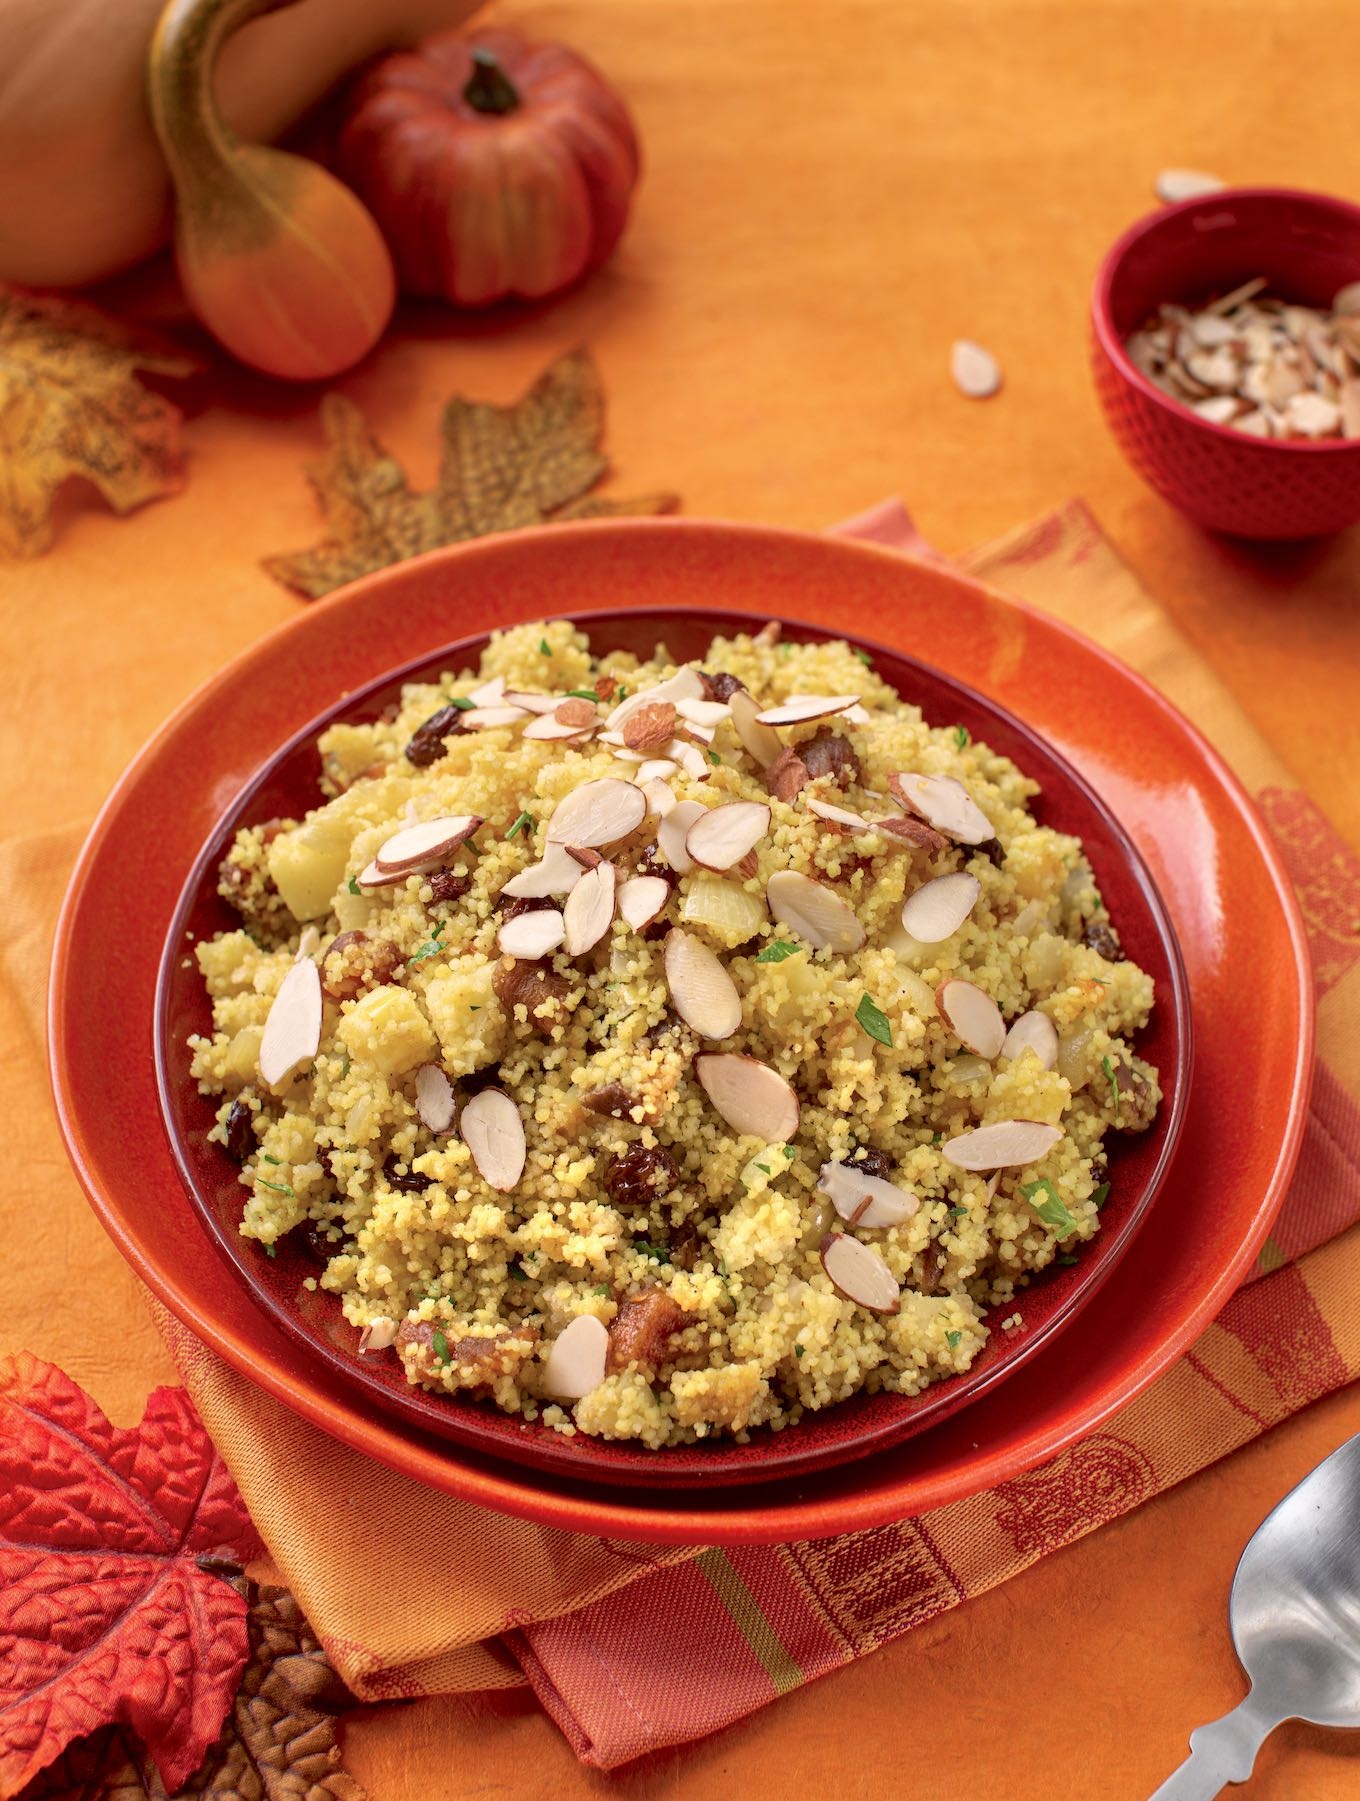 Couscous pilaf with fruits and nuts